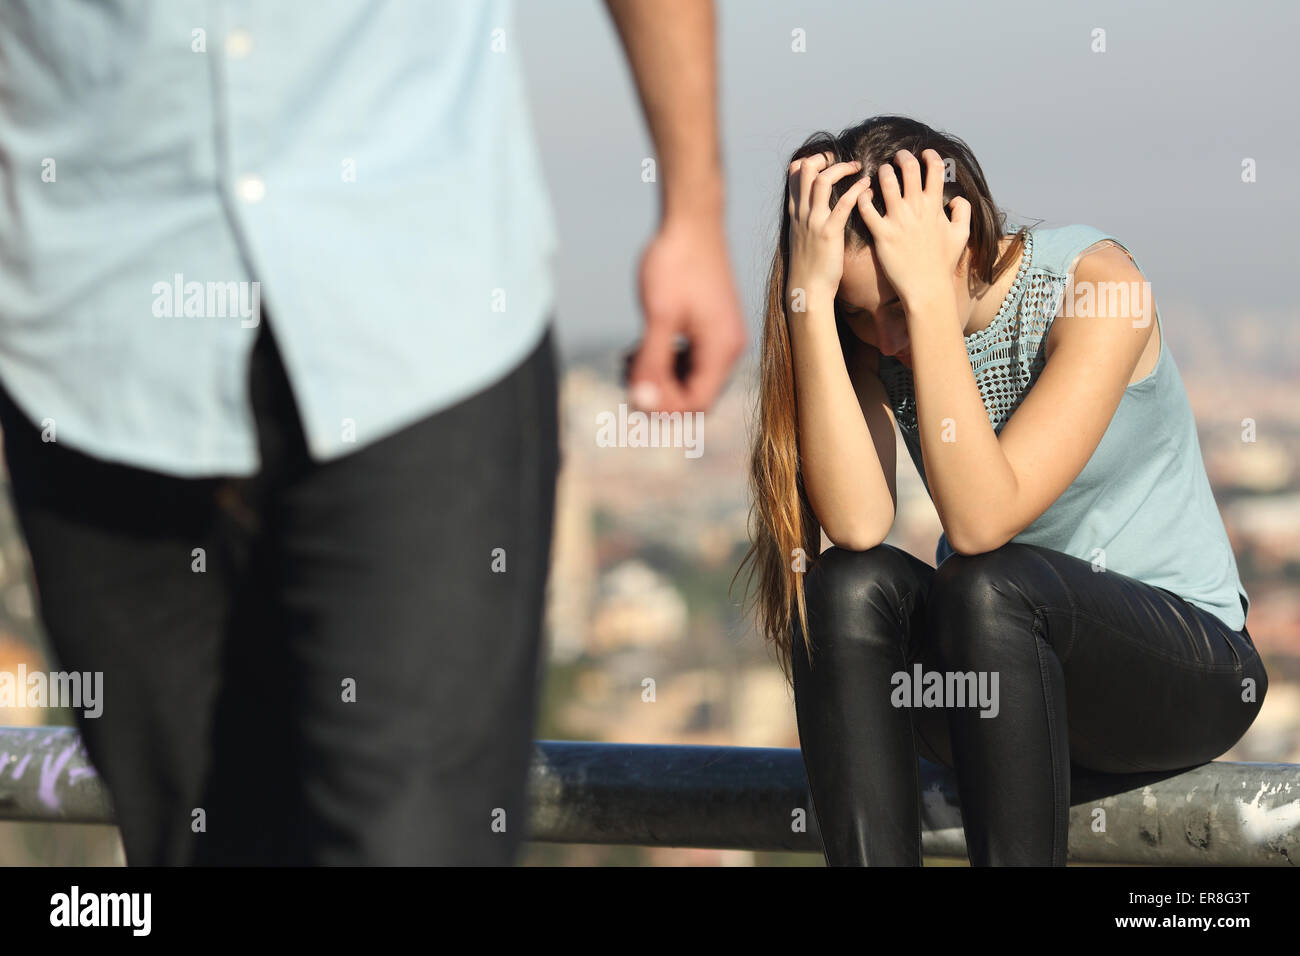 Breakup of a couple with bad guy and sad girlfriend with a city in the background - Stock Image